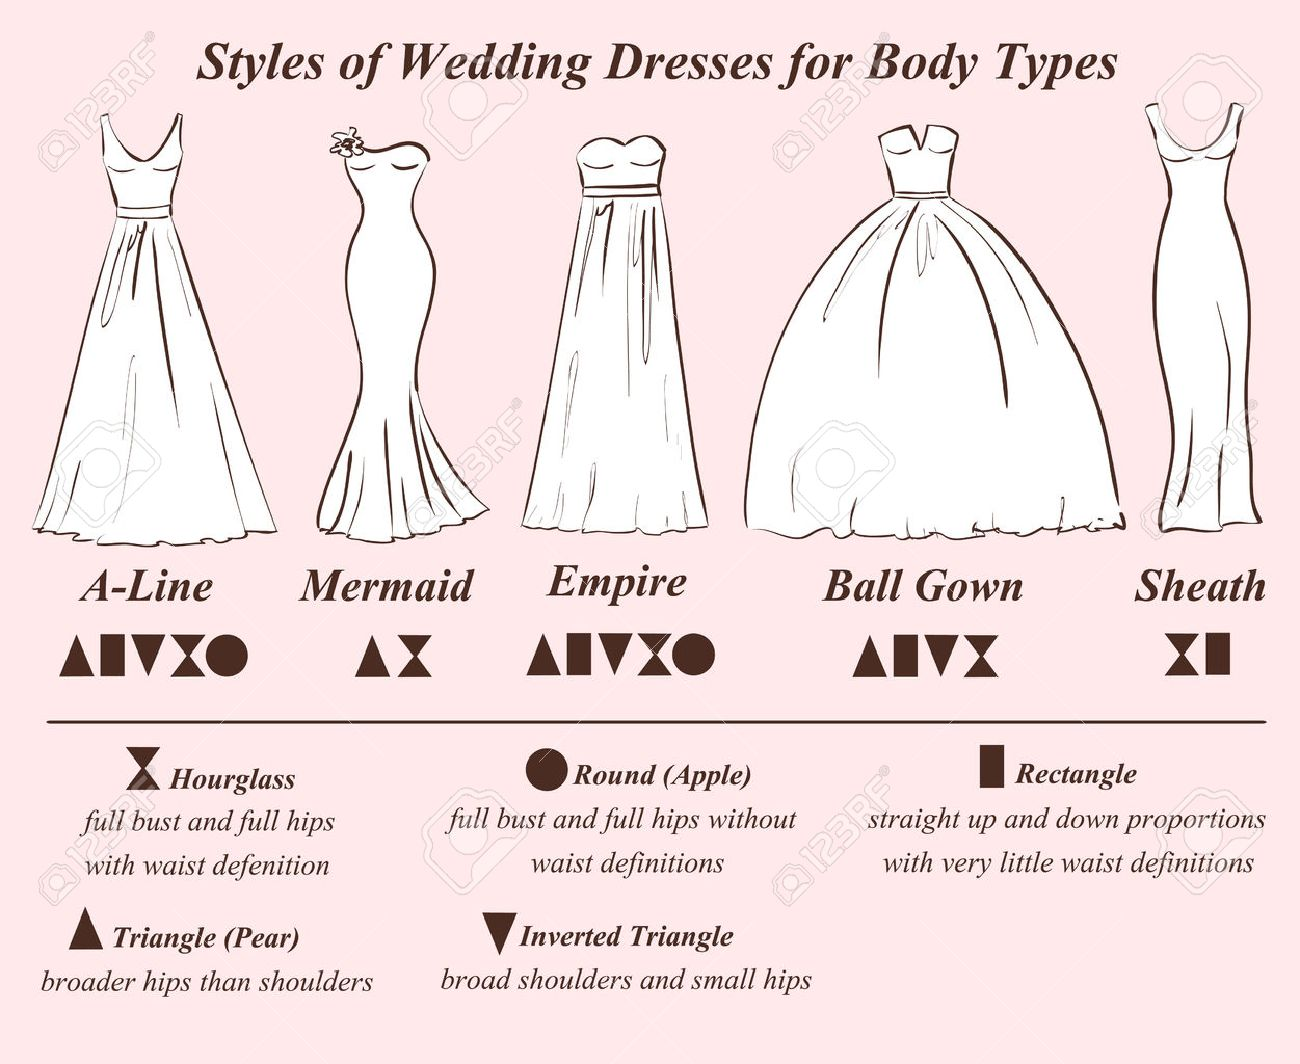 7b2295f6541ef Set of wedding dress styles for female body shape types. Wedding dress  infographic. Stock